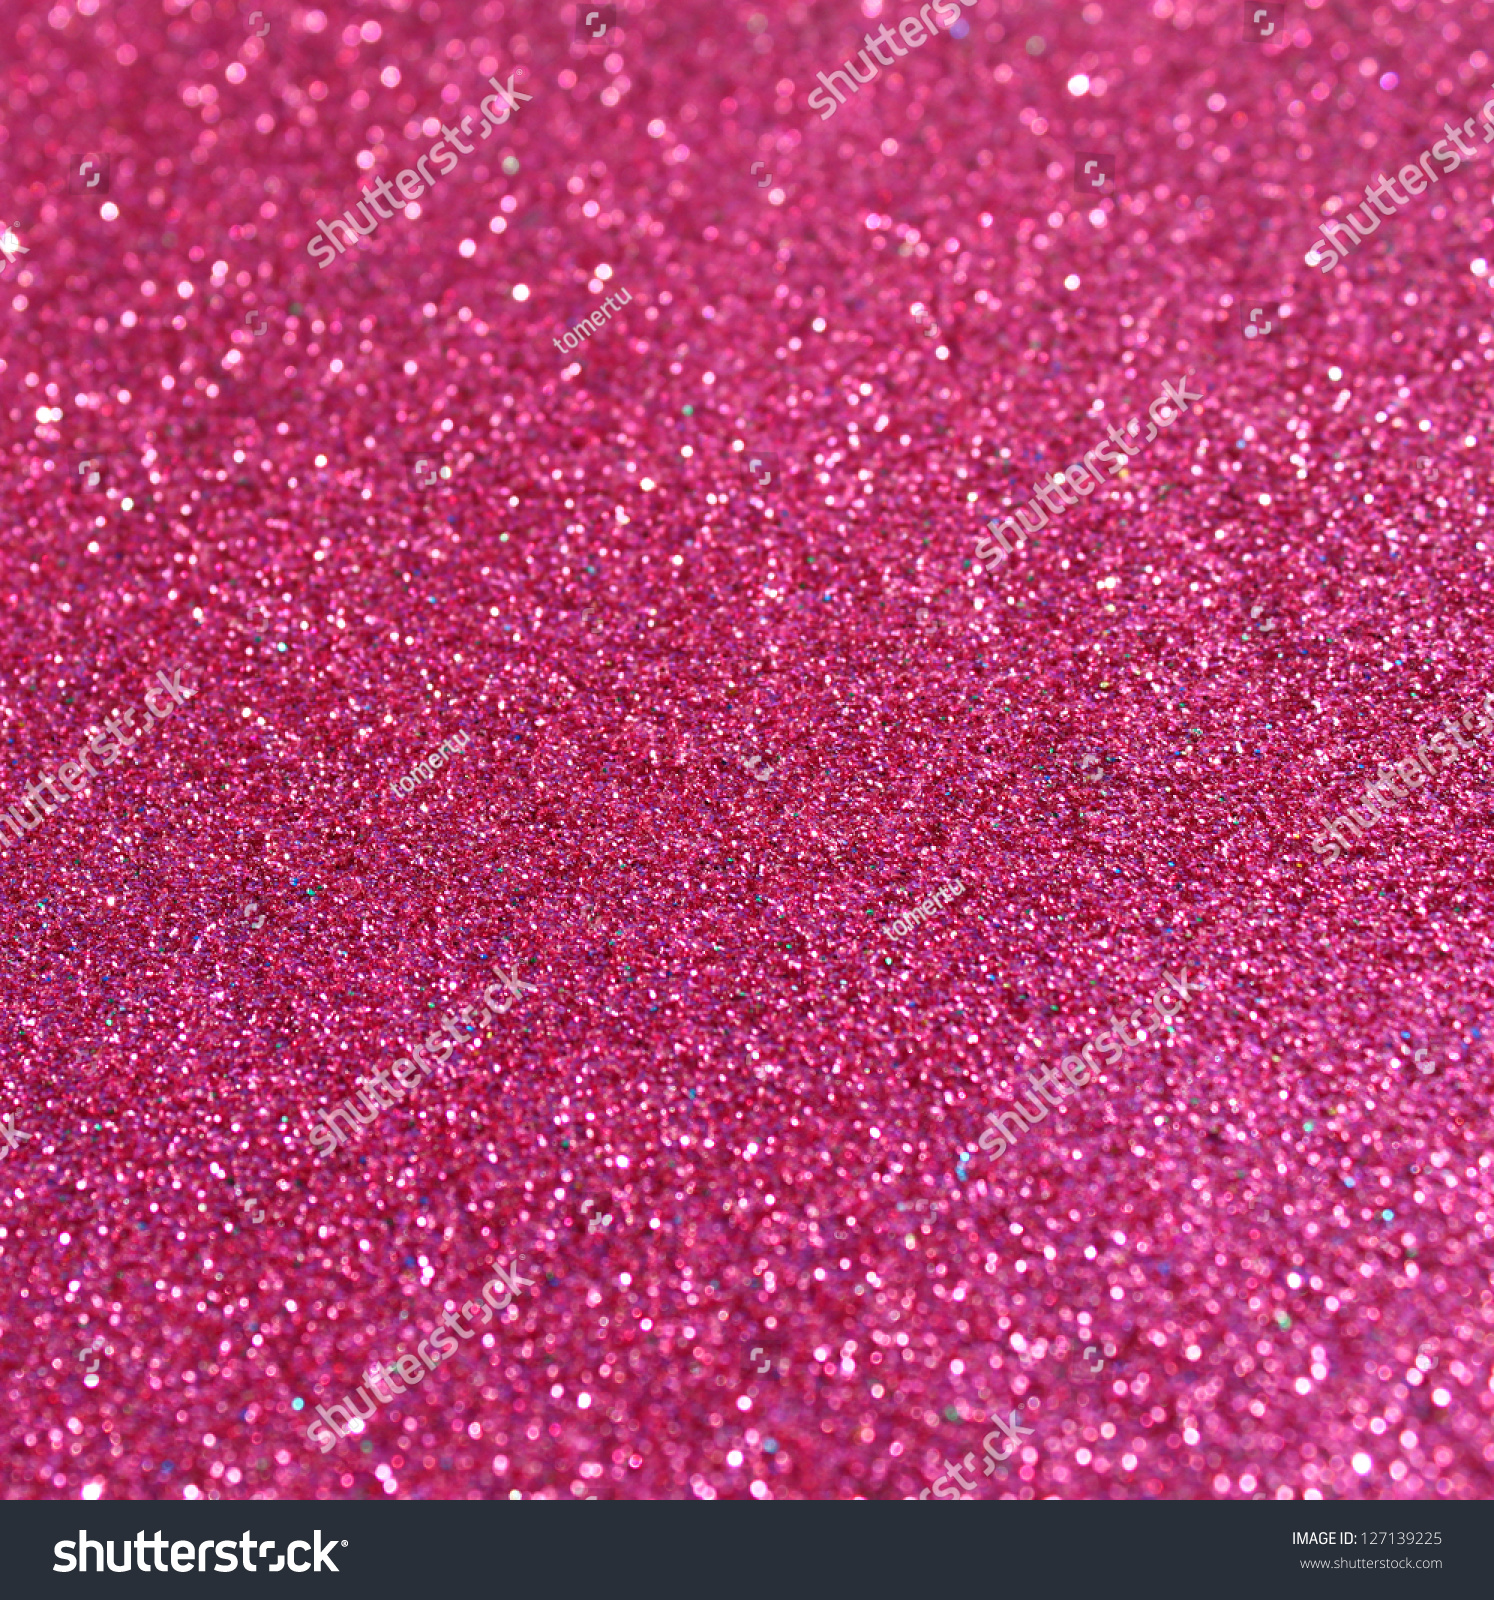 Abstract Pink Background Stock Photo 127139225 - Shutterstock